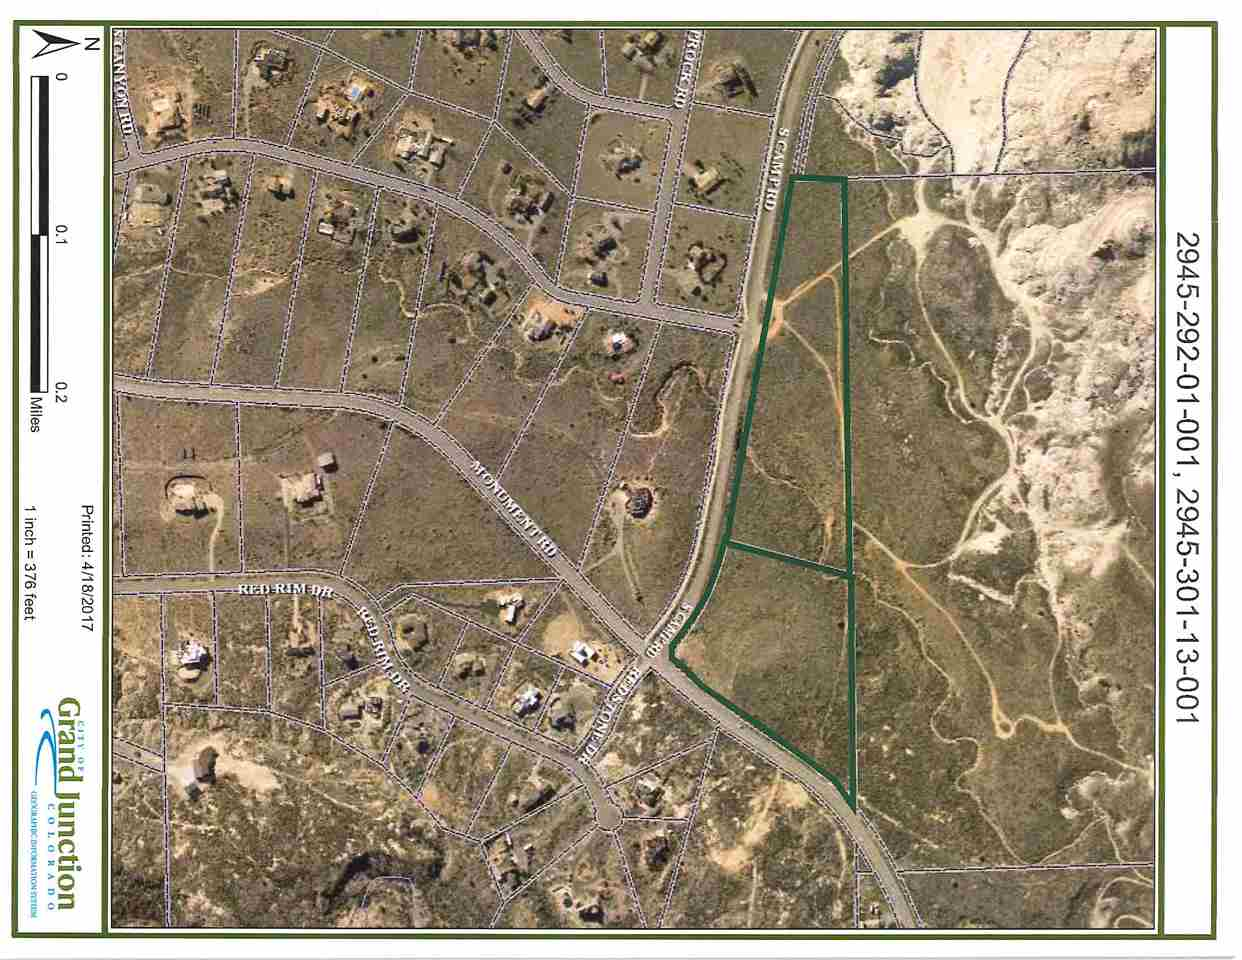 TBD South Camp Road, Grand Junction, CO 81507